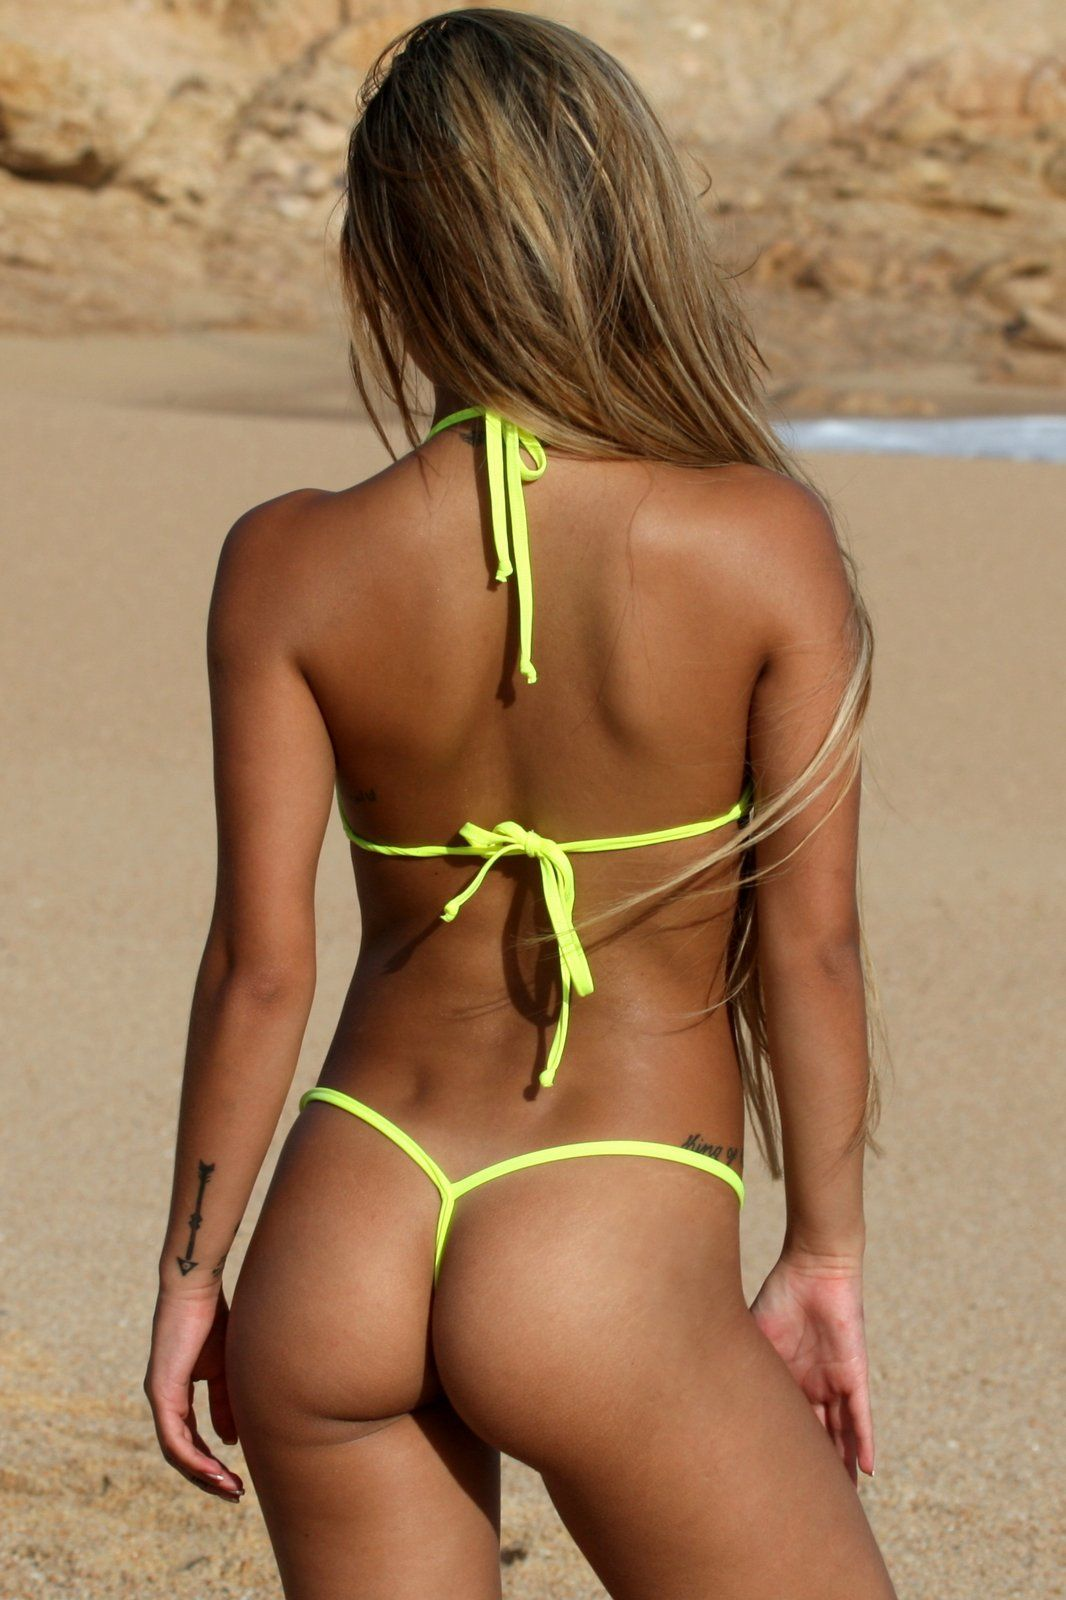 Hot Teens In Tiny Bikini 9